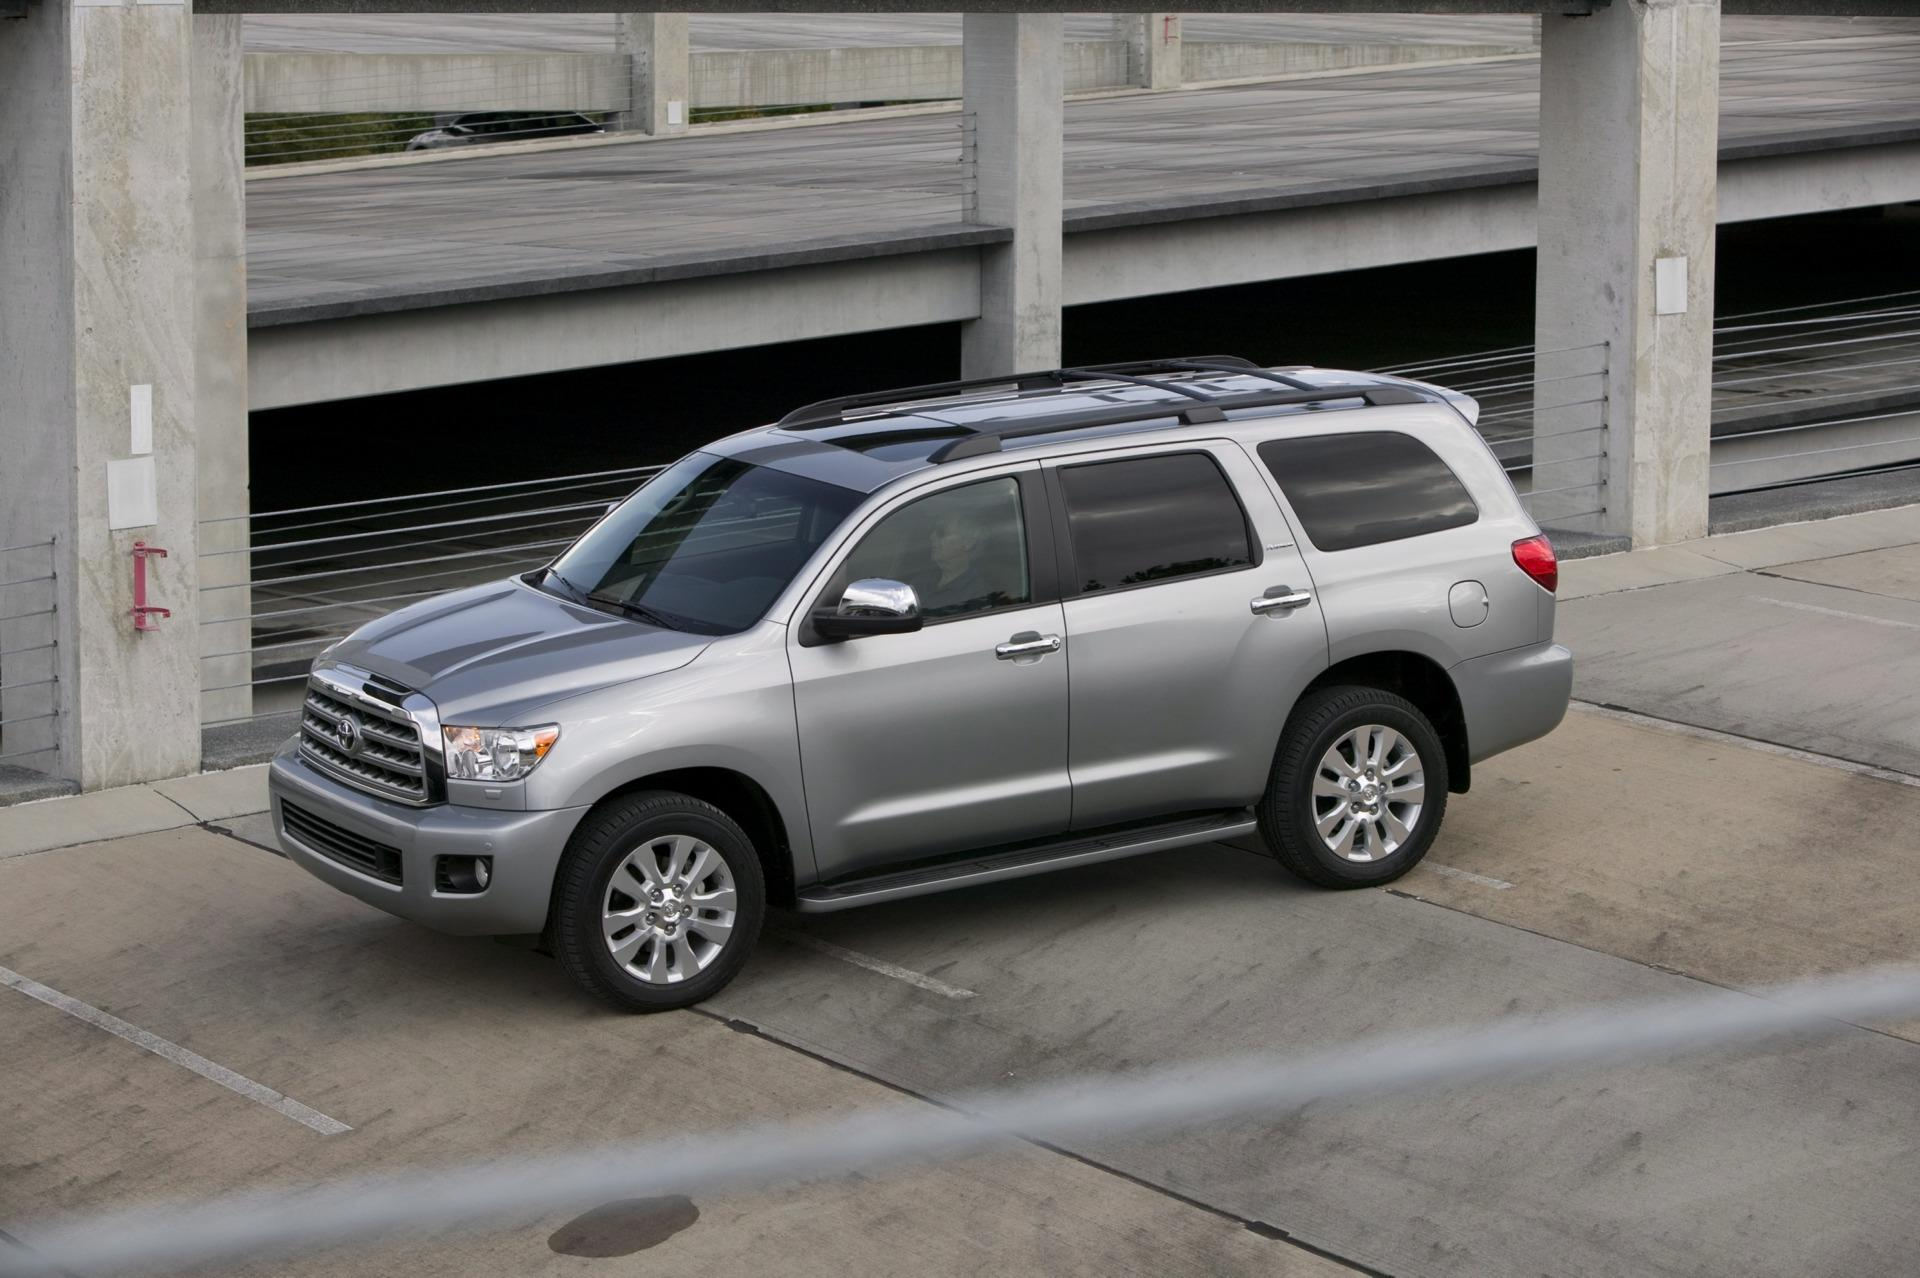 2009 Toyota Sequoia News and Information | conceptcarz.com